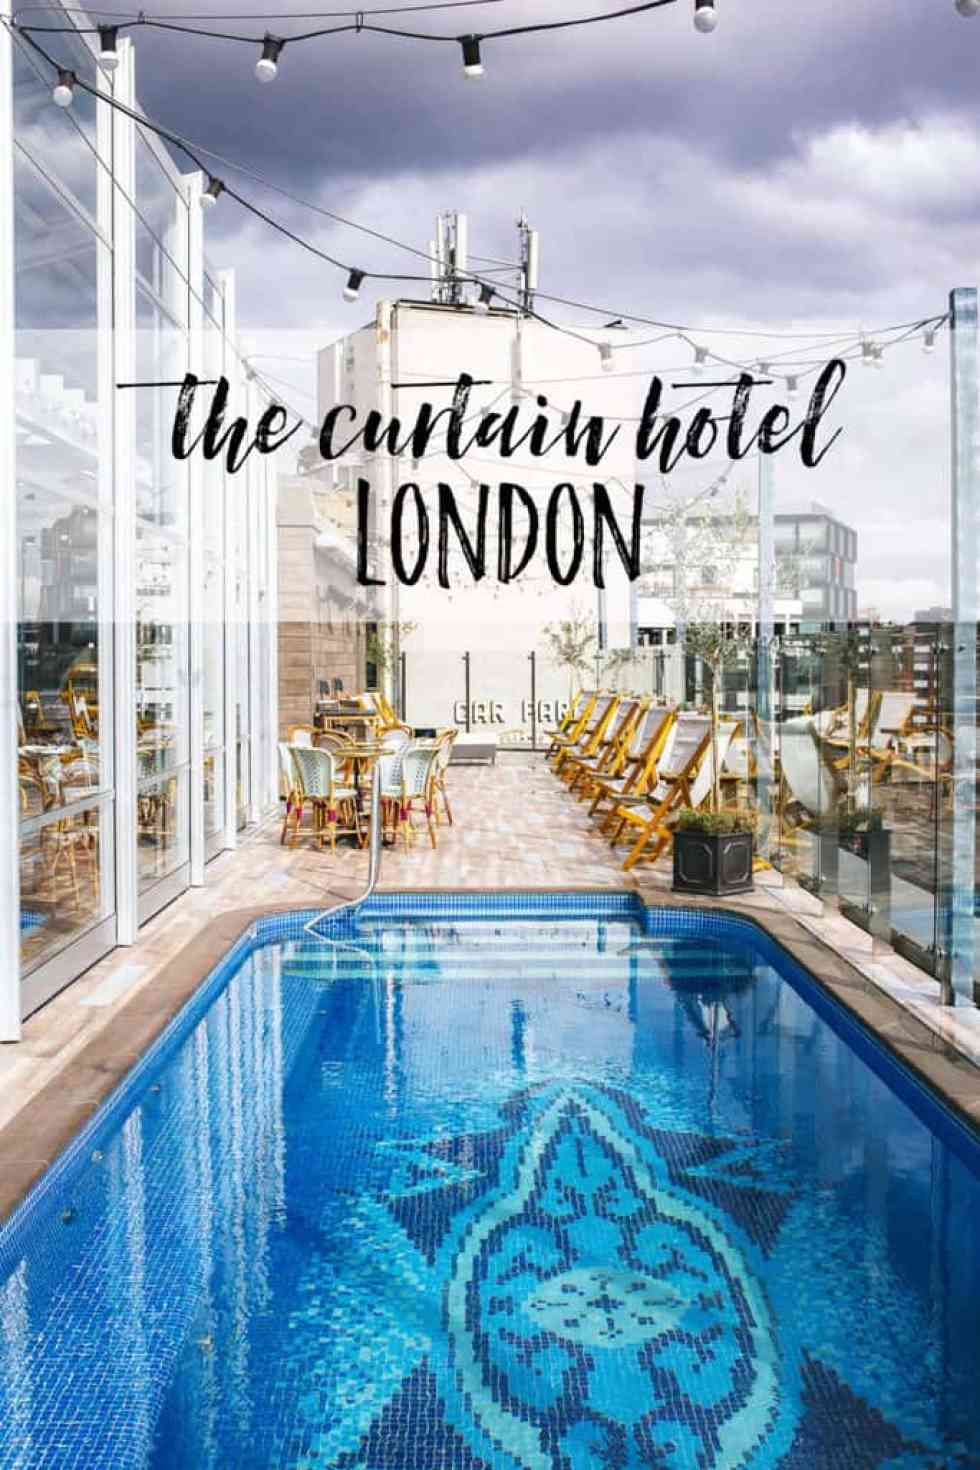 visit the curtain hotel london for this spectacular rooftop pool